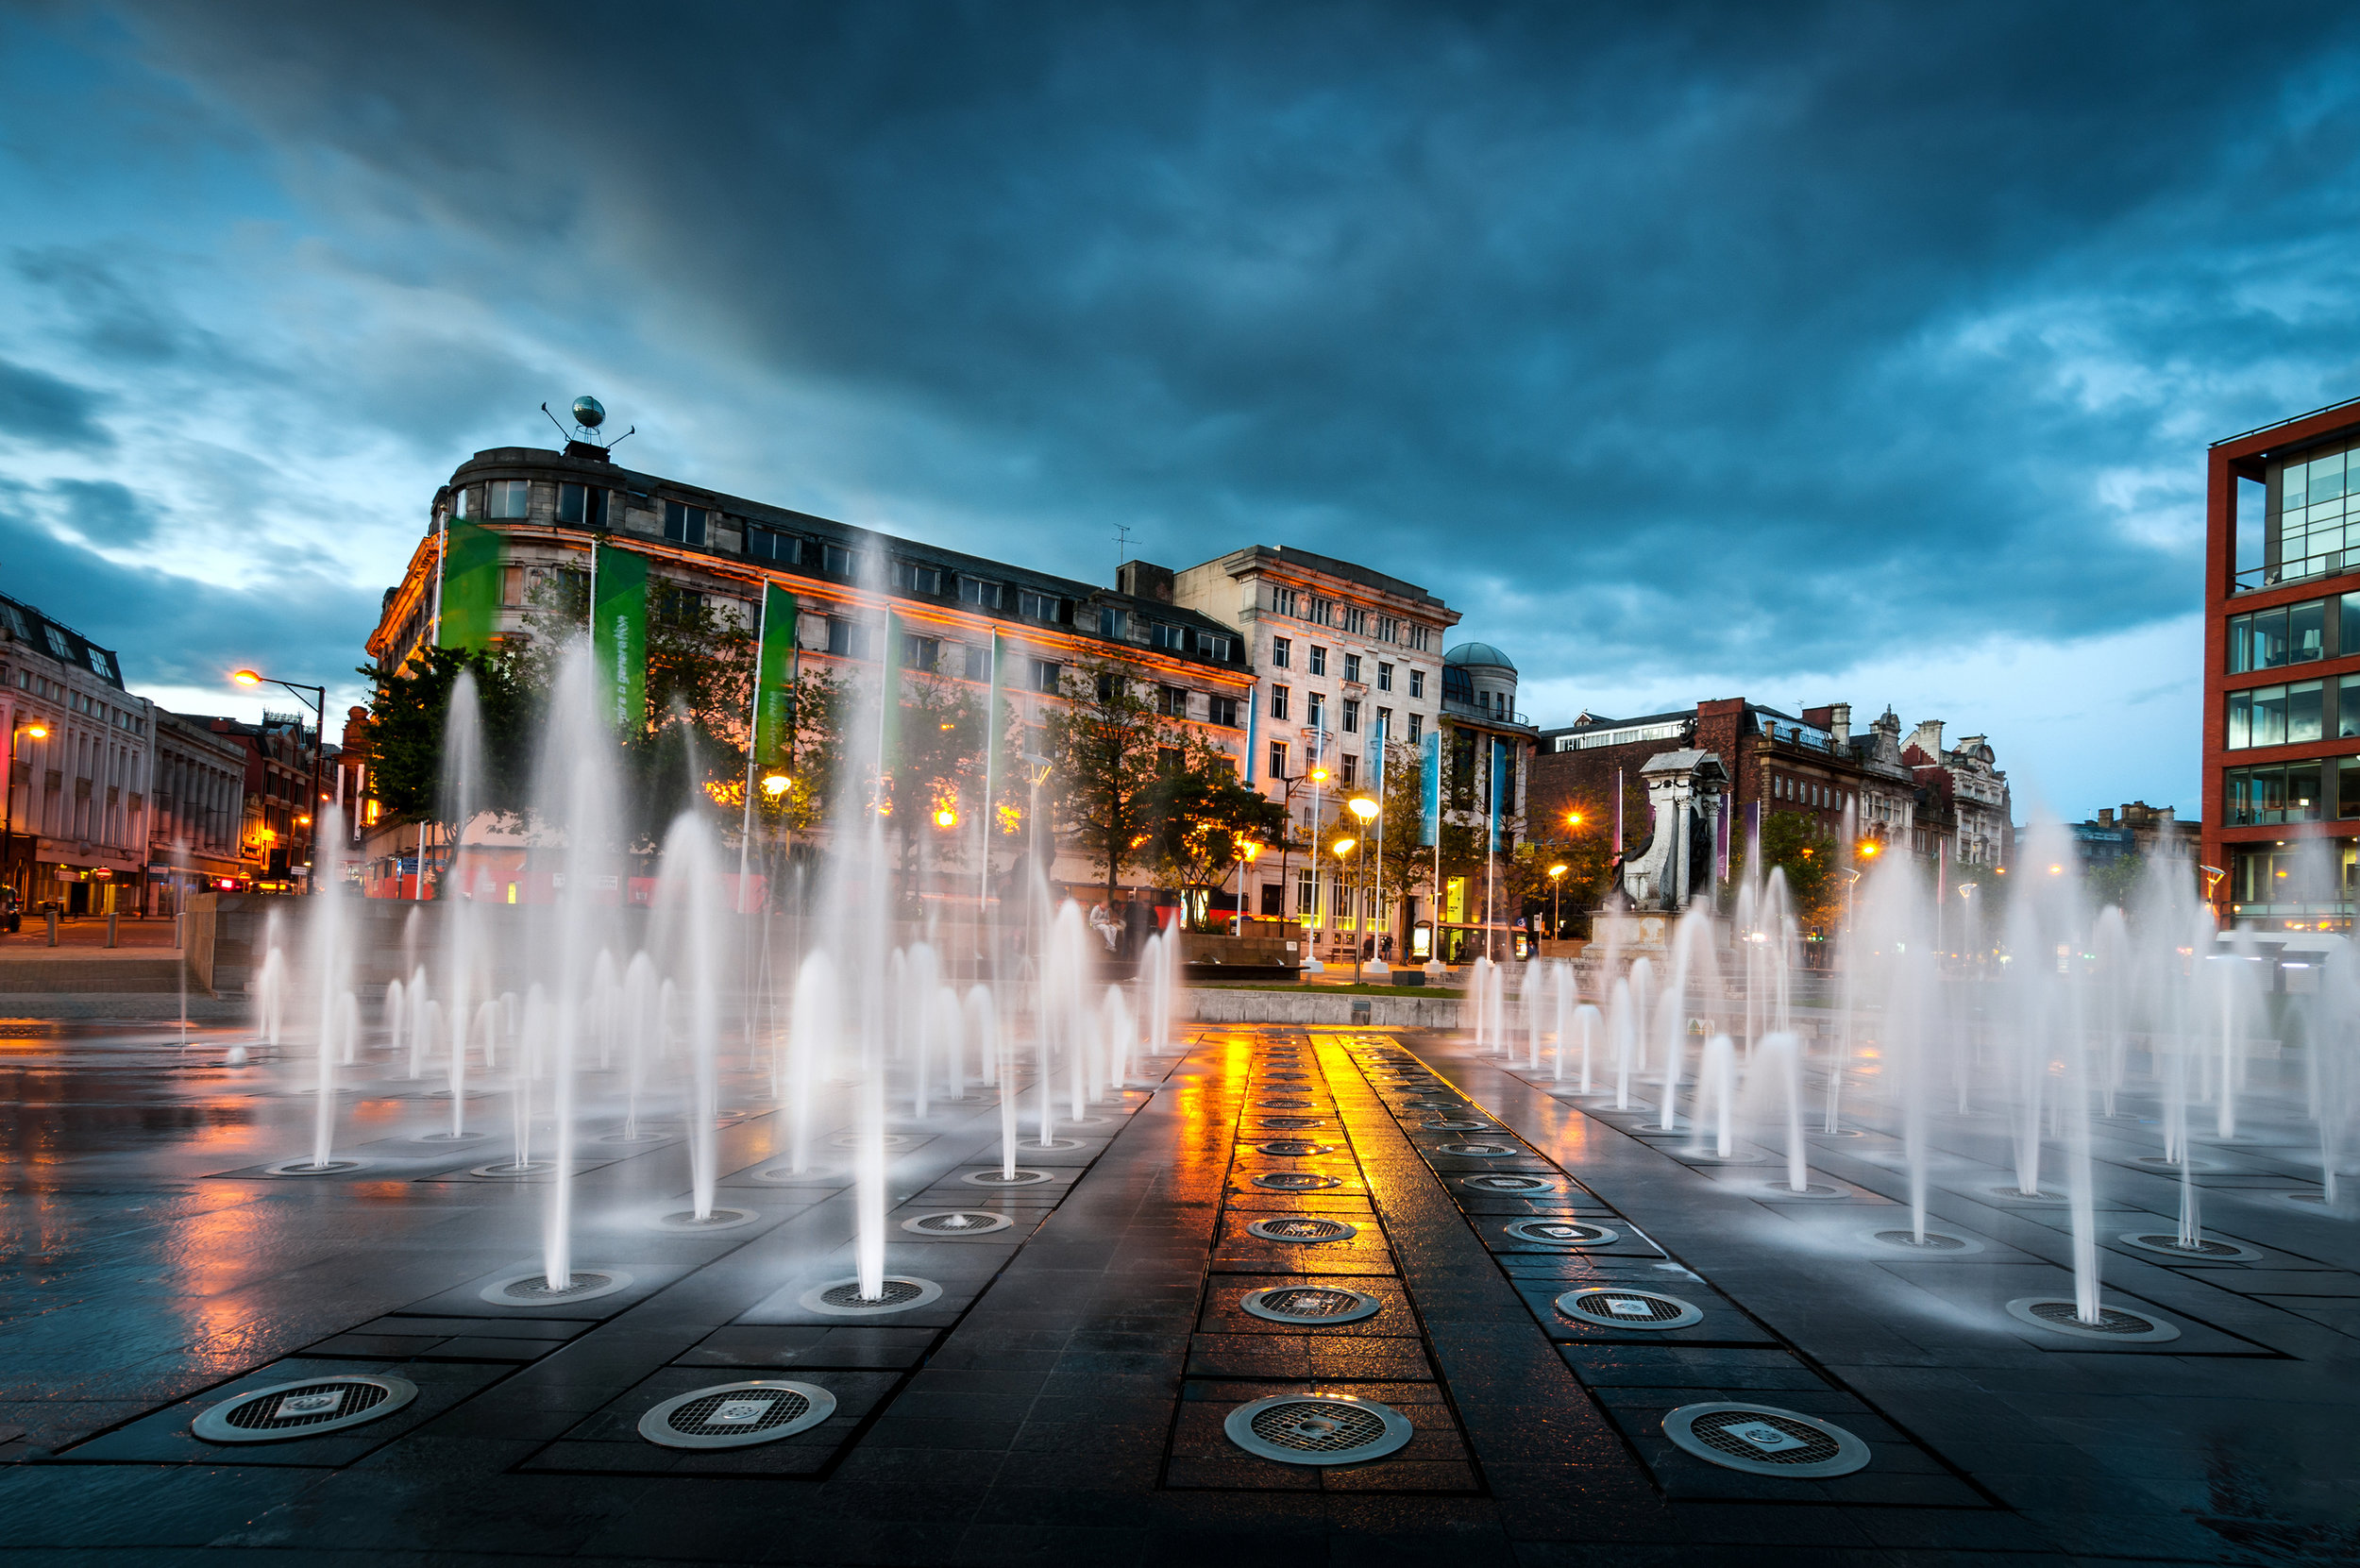 Manchester, unofficially the United Kingdom's second city, also features on the list.